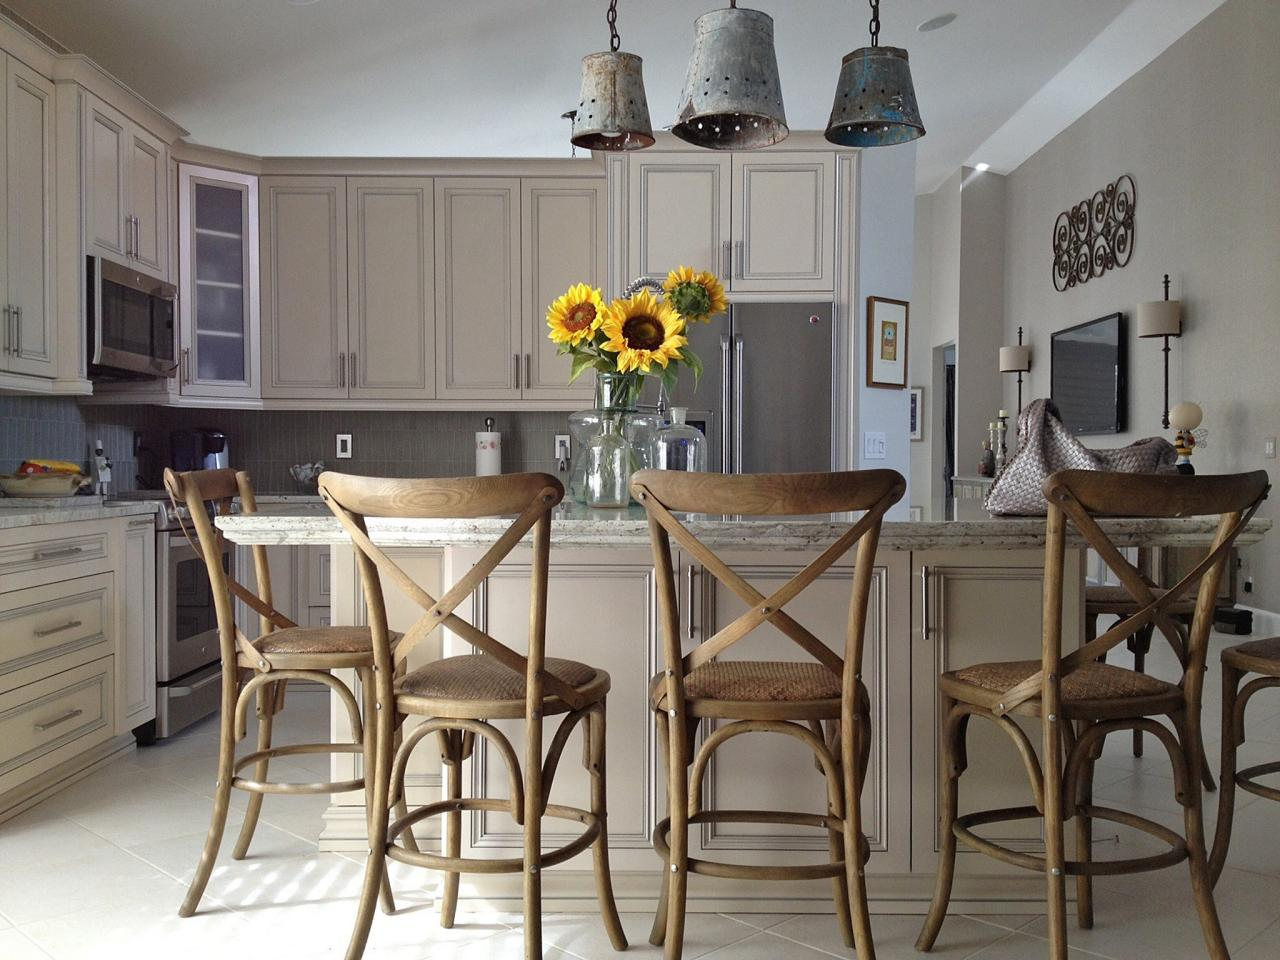 Kitchen Island Chairs: Pictures & Ideas From HGTV